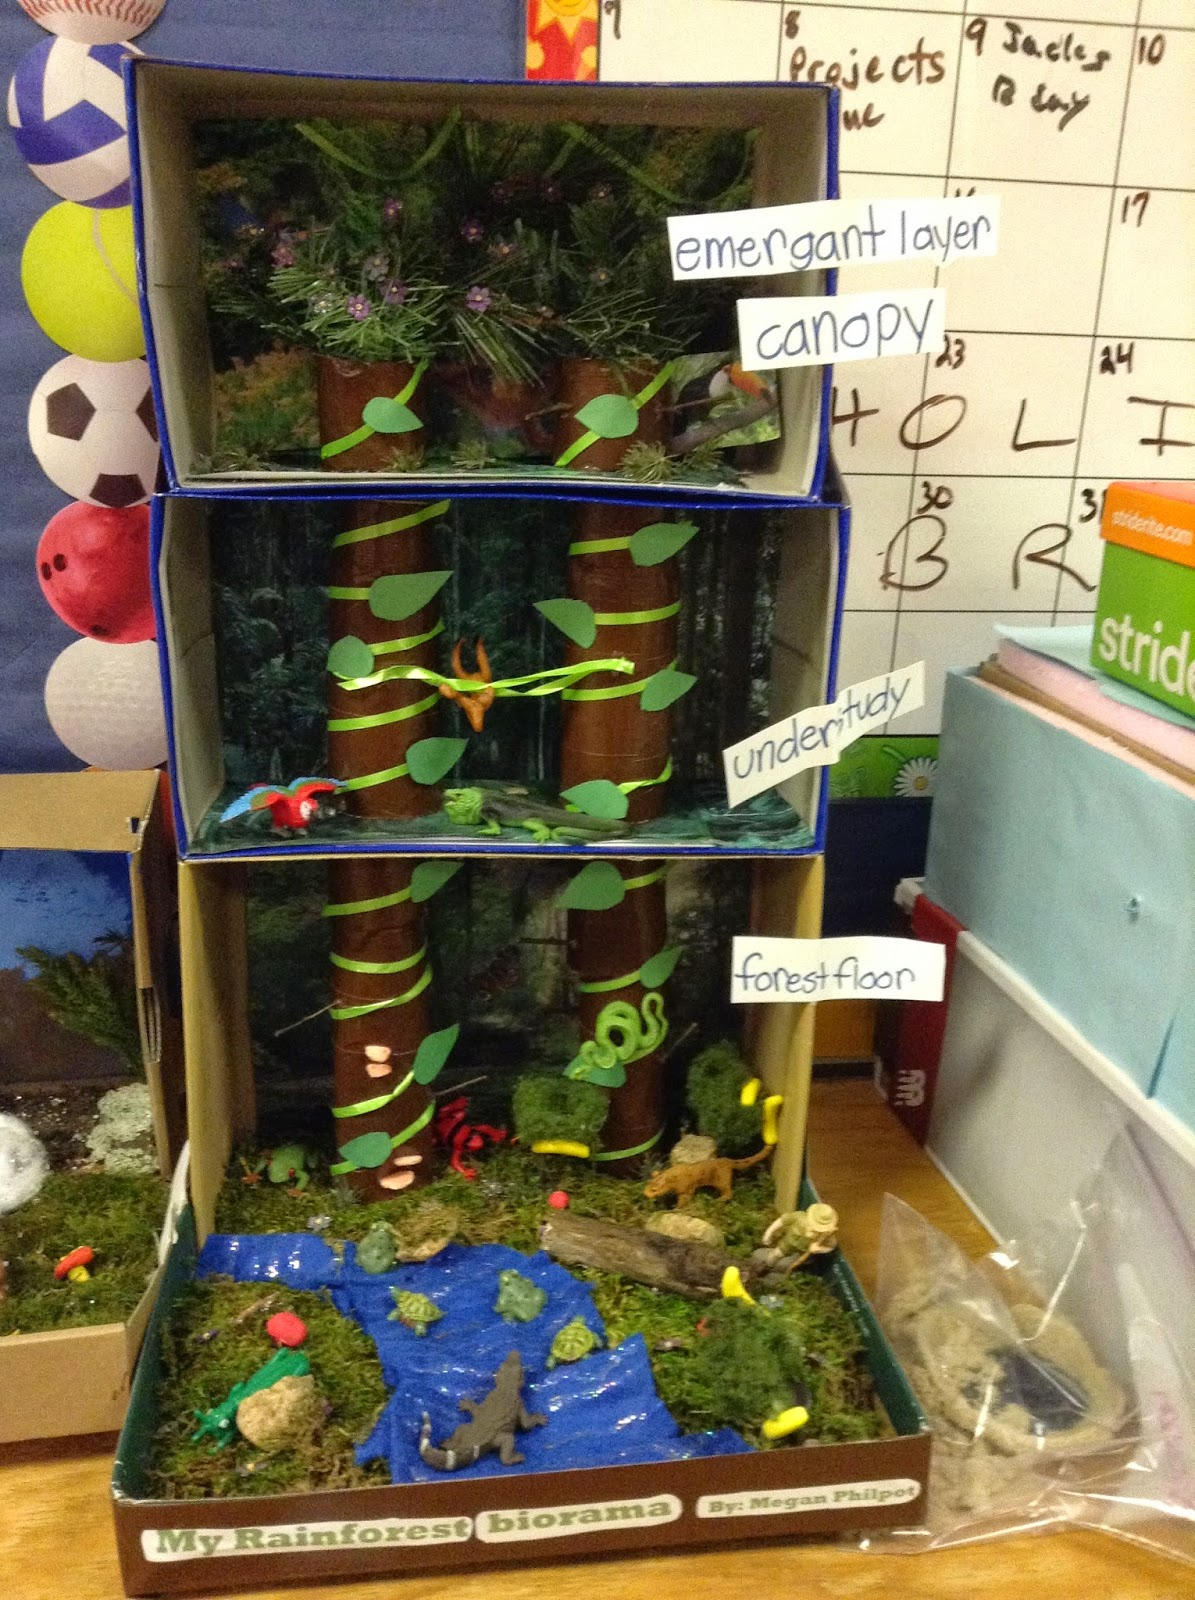 Tropical Rainforest Biome In A Box Shoes Wiring Diagrams Single Supply Bipolar Input Differential Output Amplifierblog Mrs Edge S Science Class Blog February 2017 Rh Edgehccms Blogspot Com